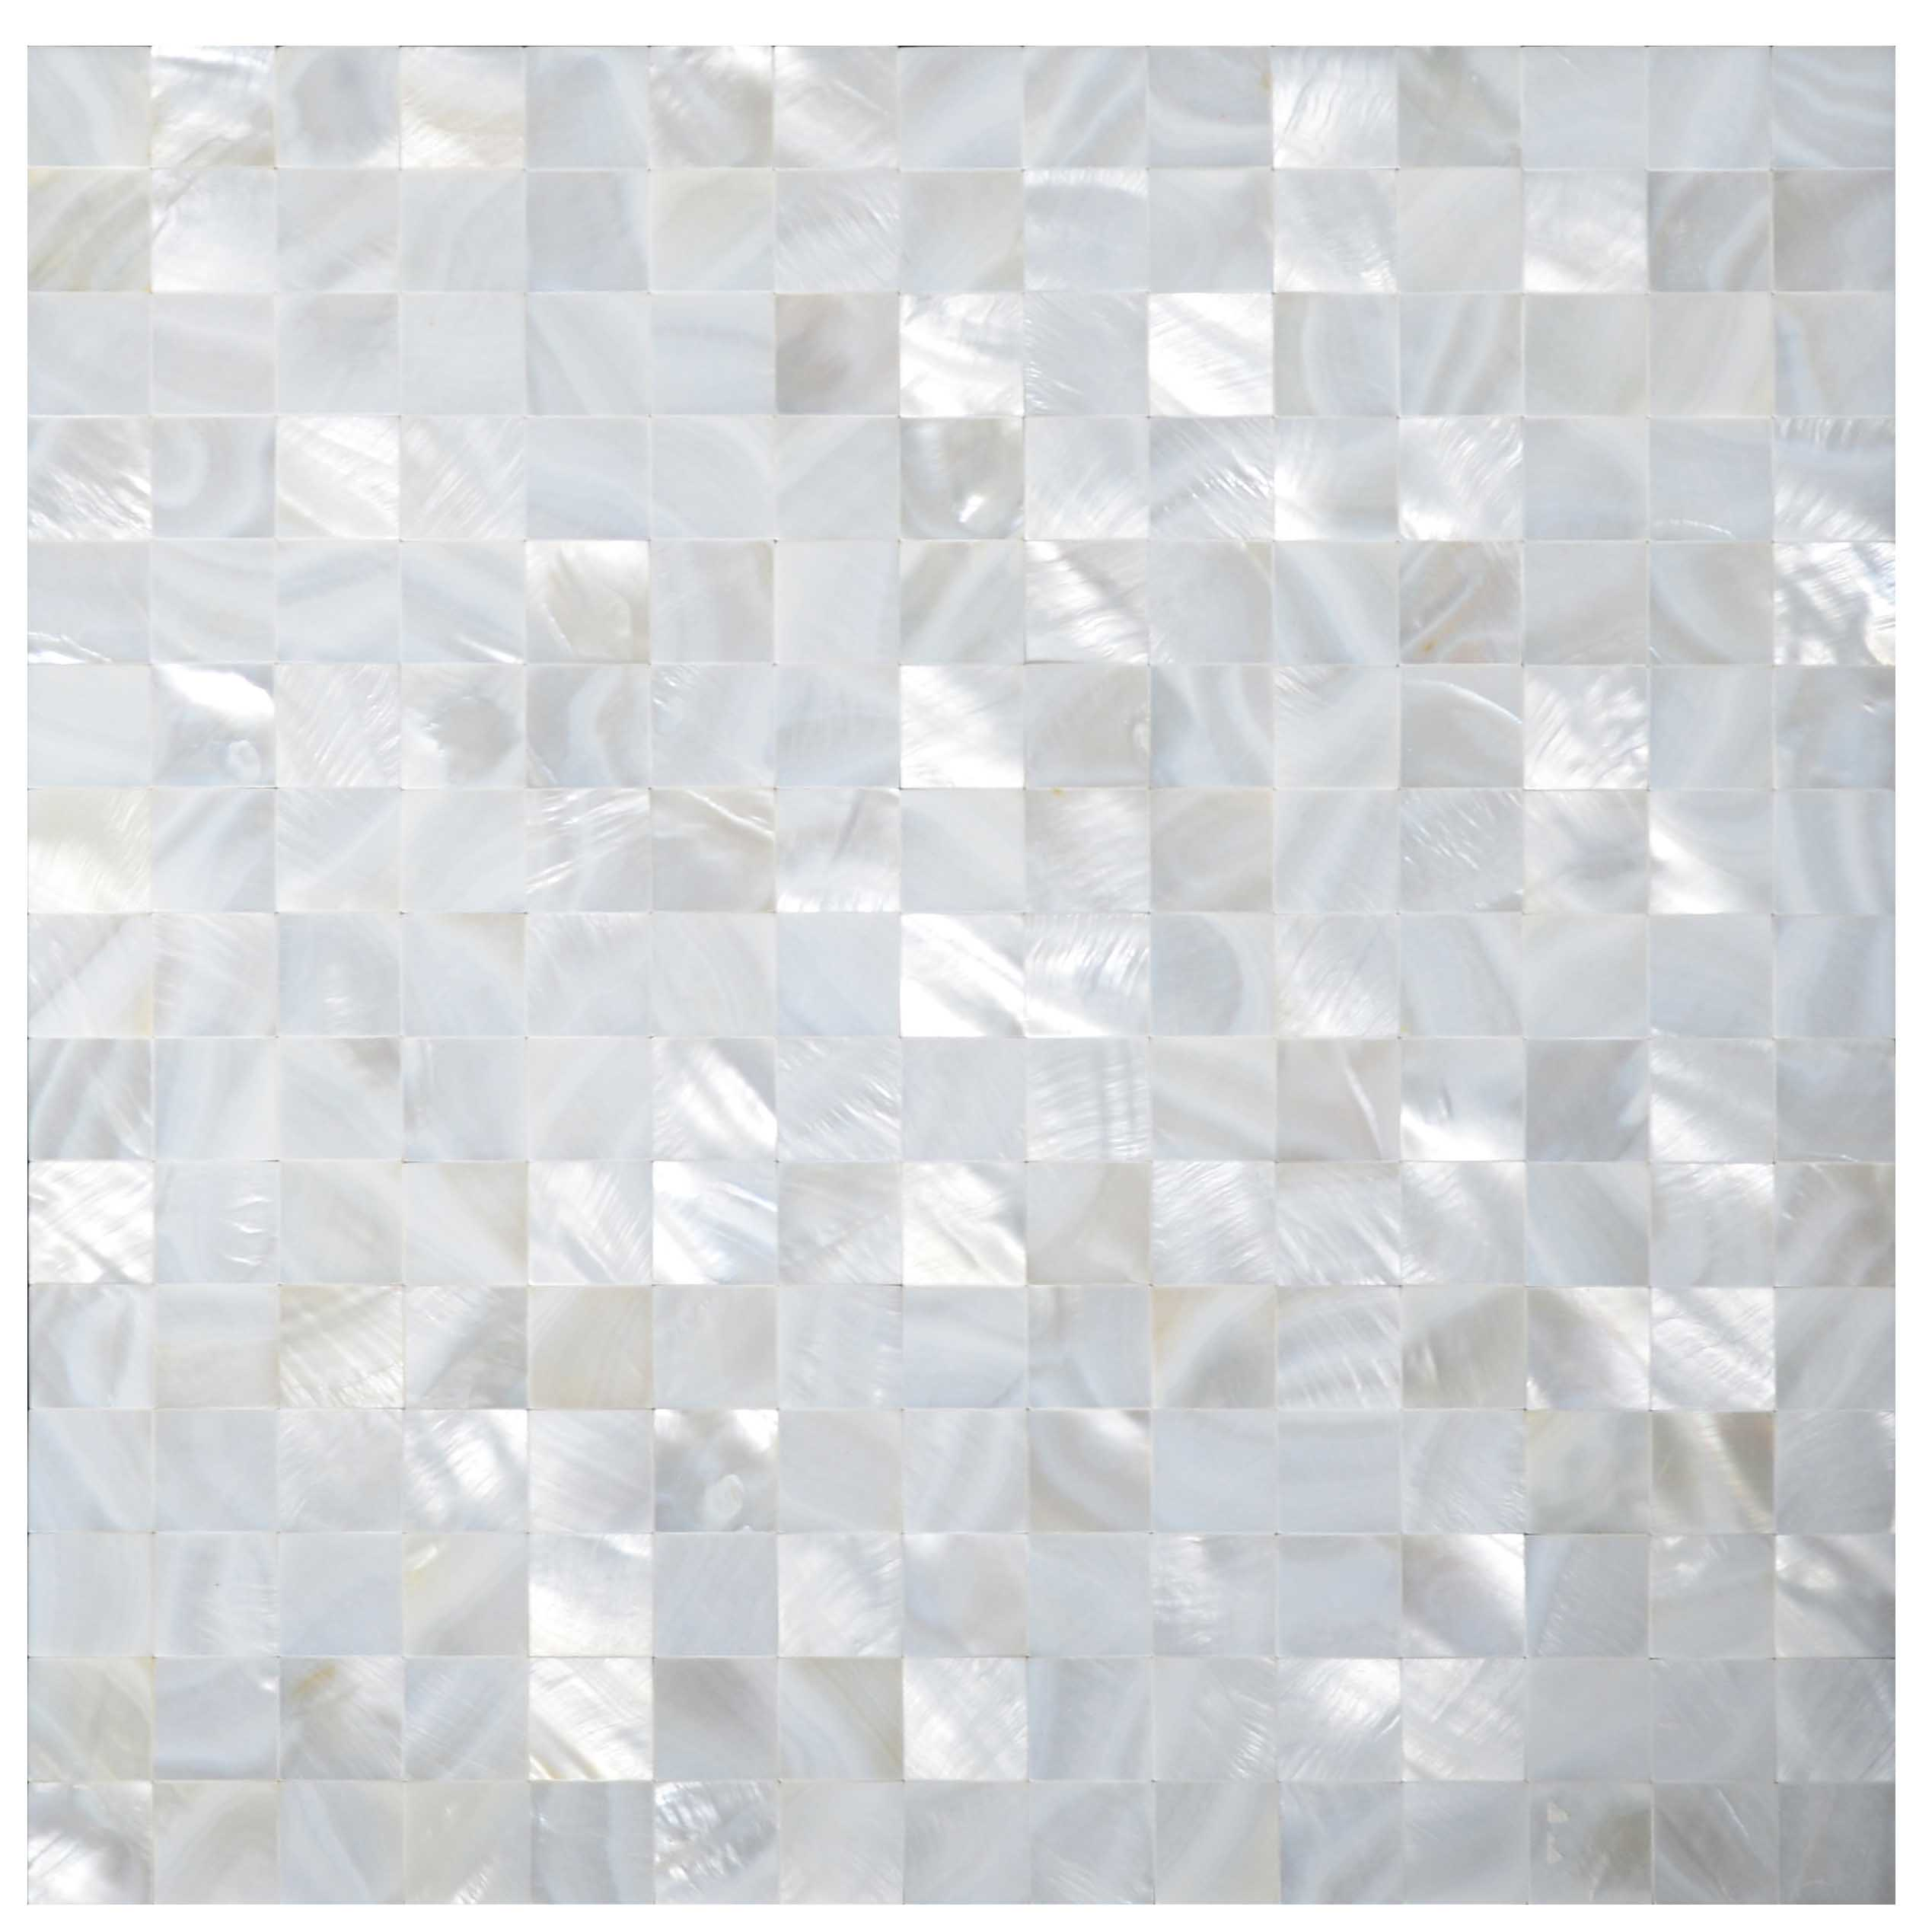 Groutless Accent Tile Wall: Seamless Square Groutless Mother Of Pearl Tiles Backsplash